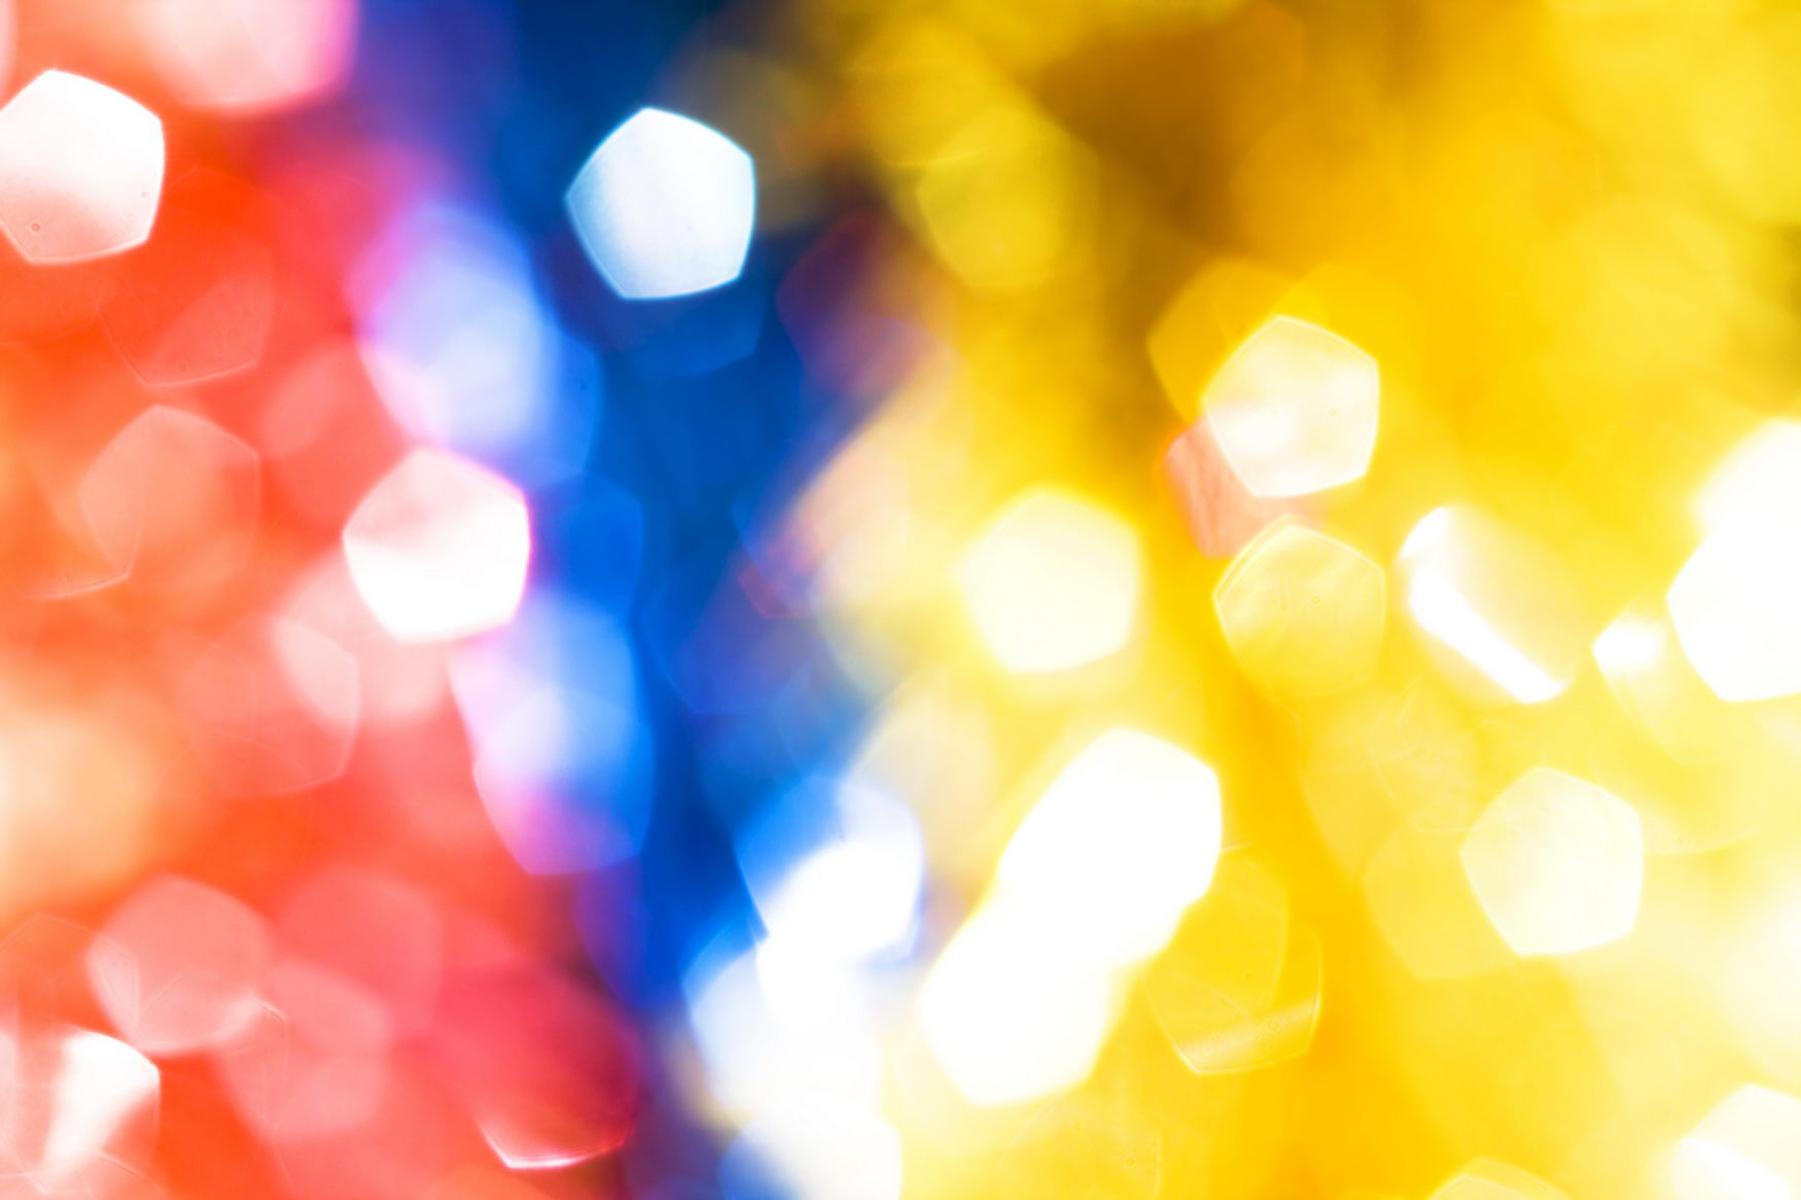 blur background, Merry, New, Light, Holiday, HQ Photo